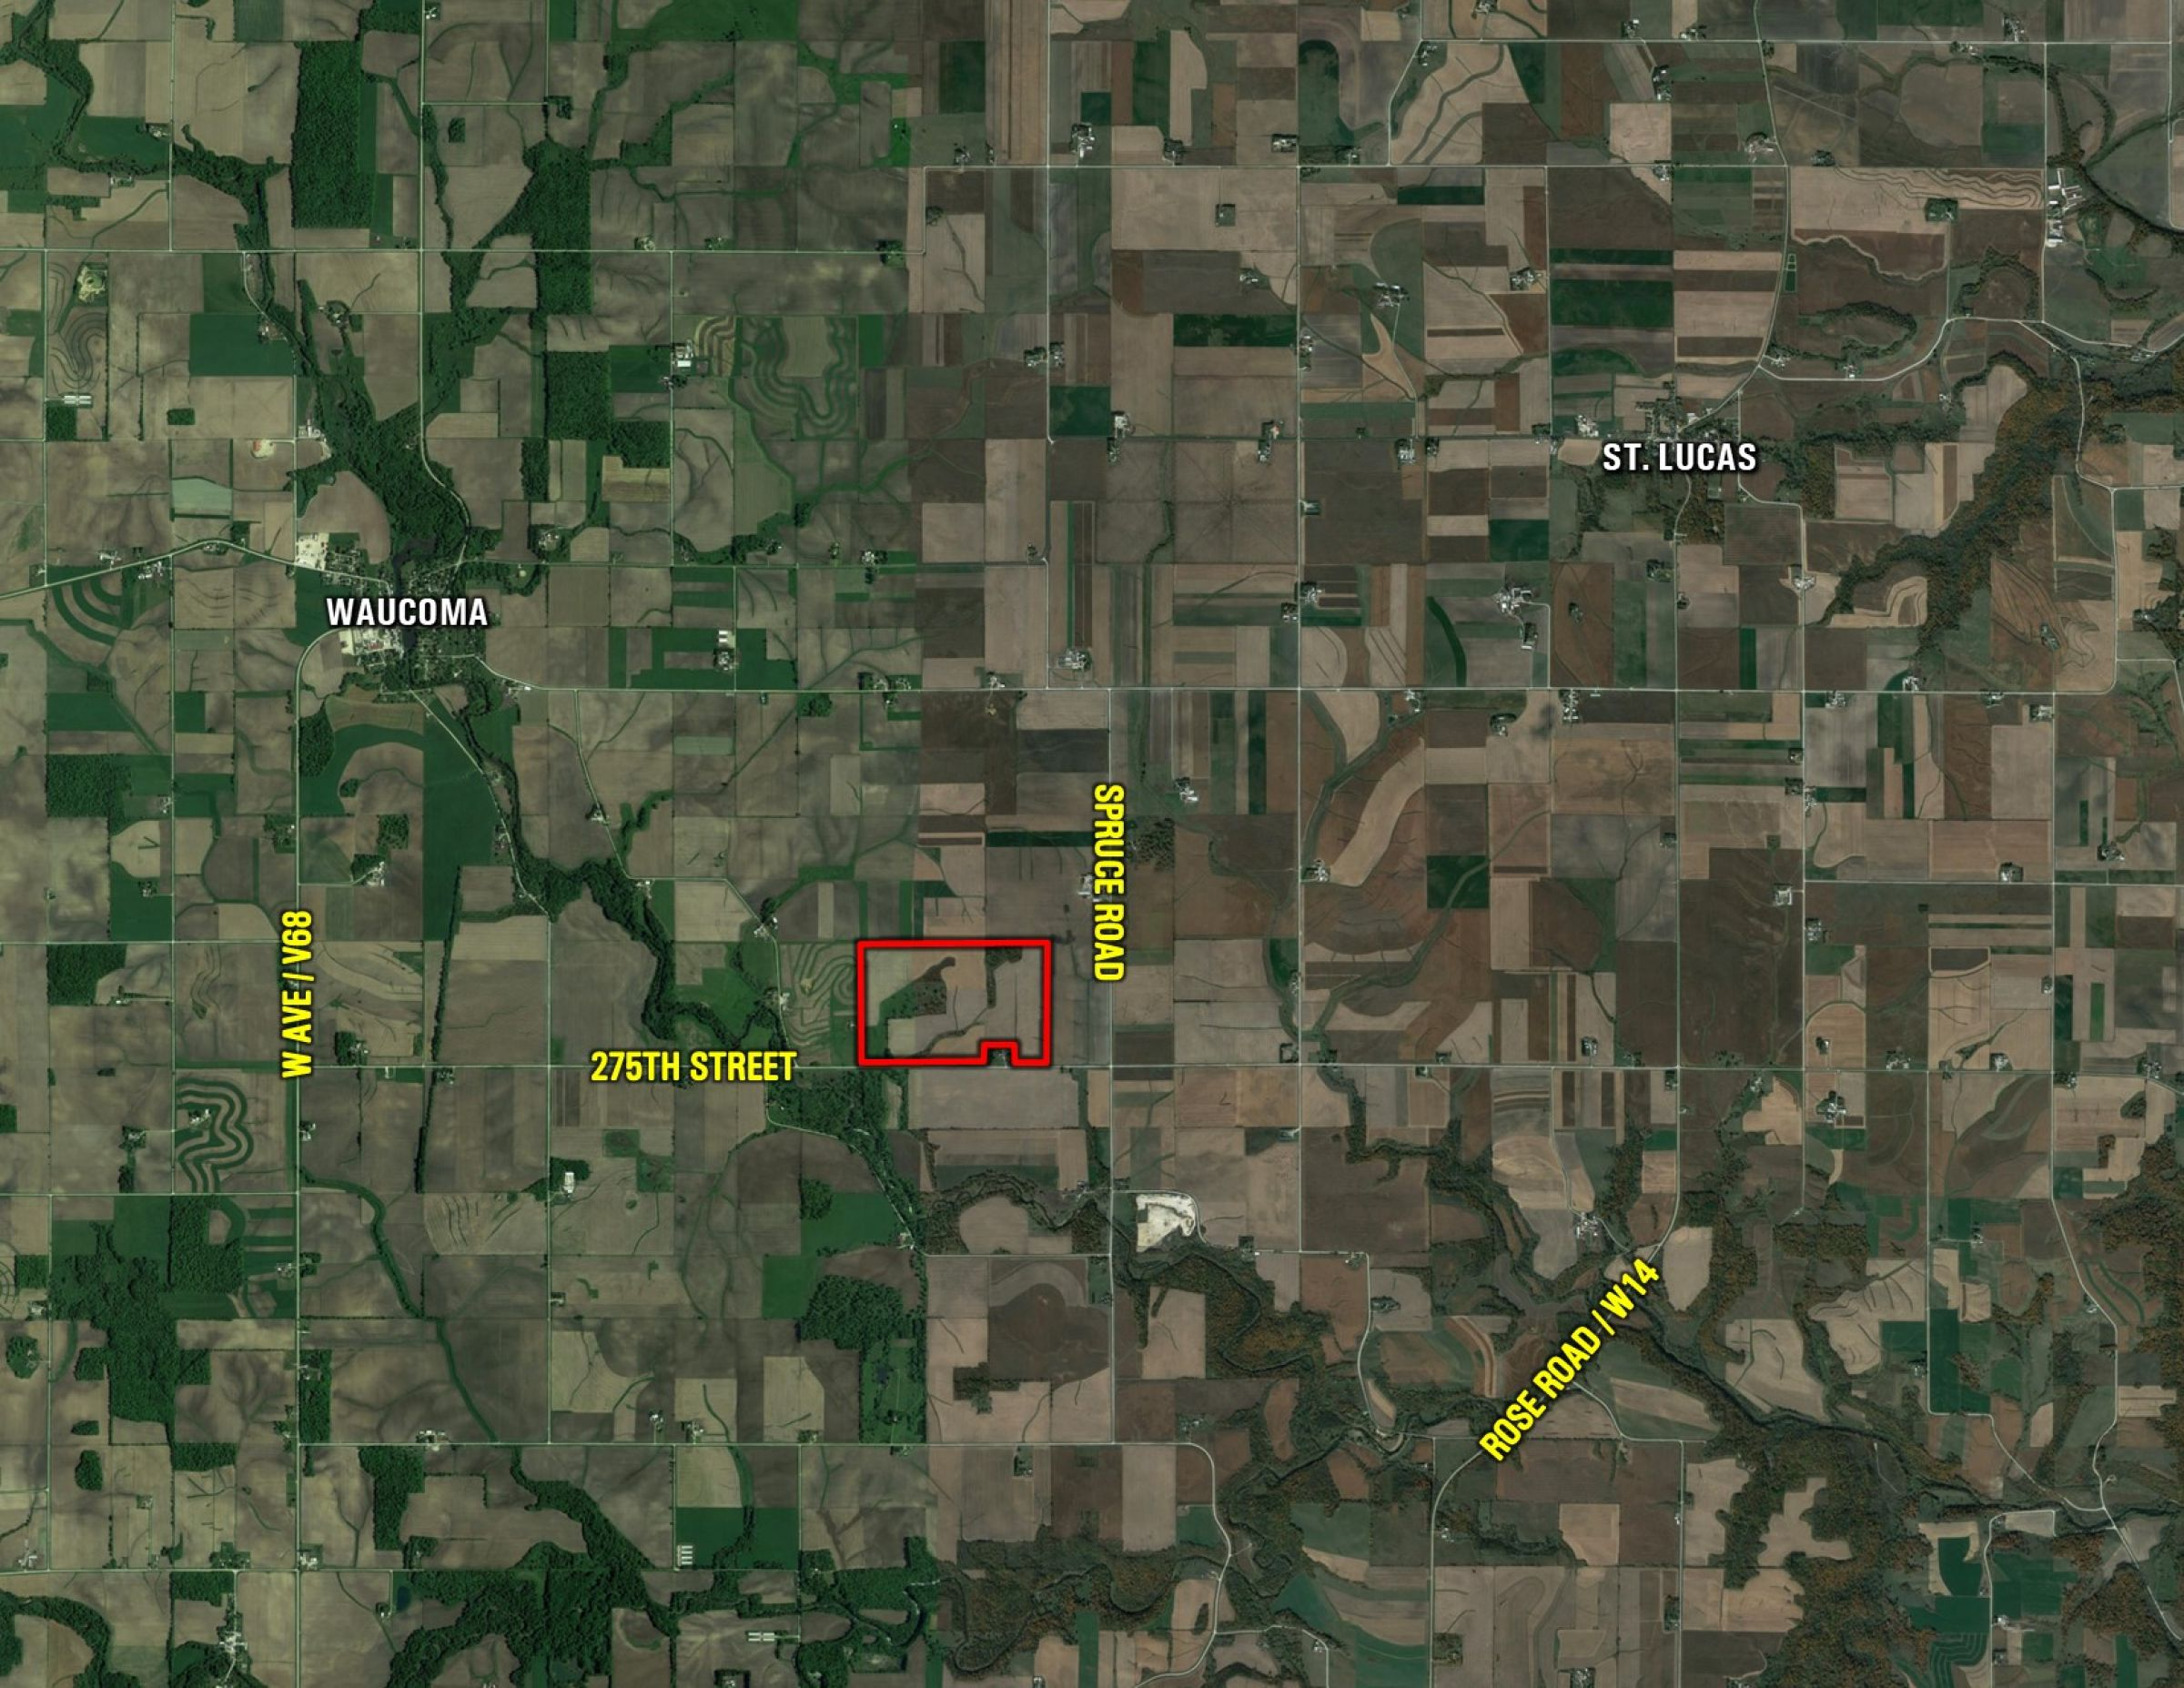 auctions-land-fayette-county-iowa-233-acres-listing-number-15645-0-2021-07-21-151754.jpg